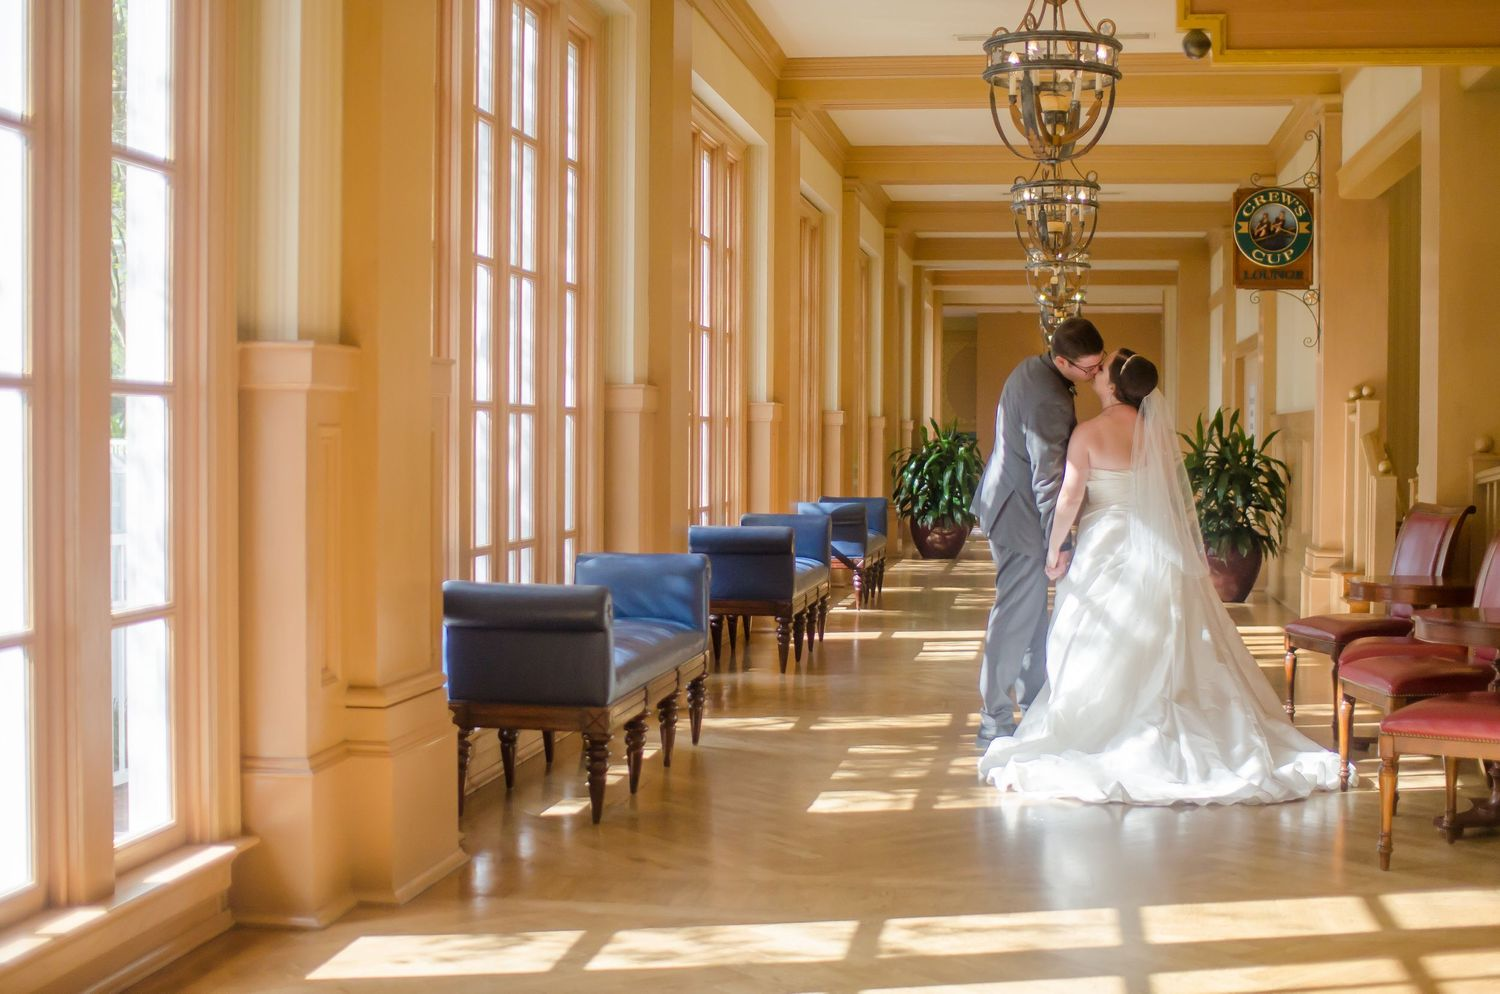 Bride and Groom kissing in the hallway on their way to their Walt Disney World Yacht Club resort wedding